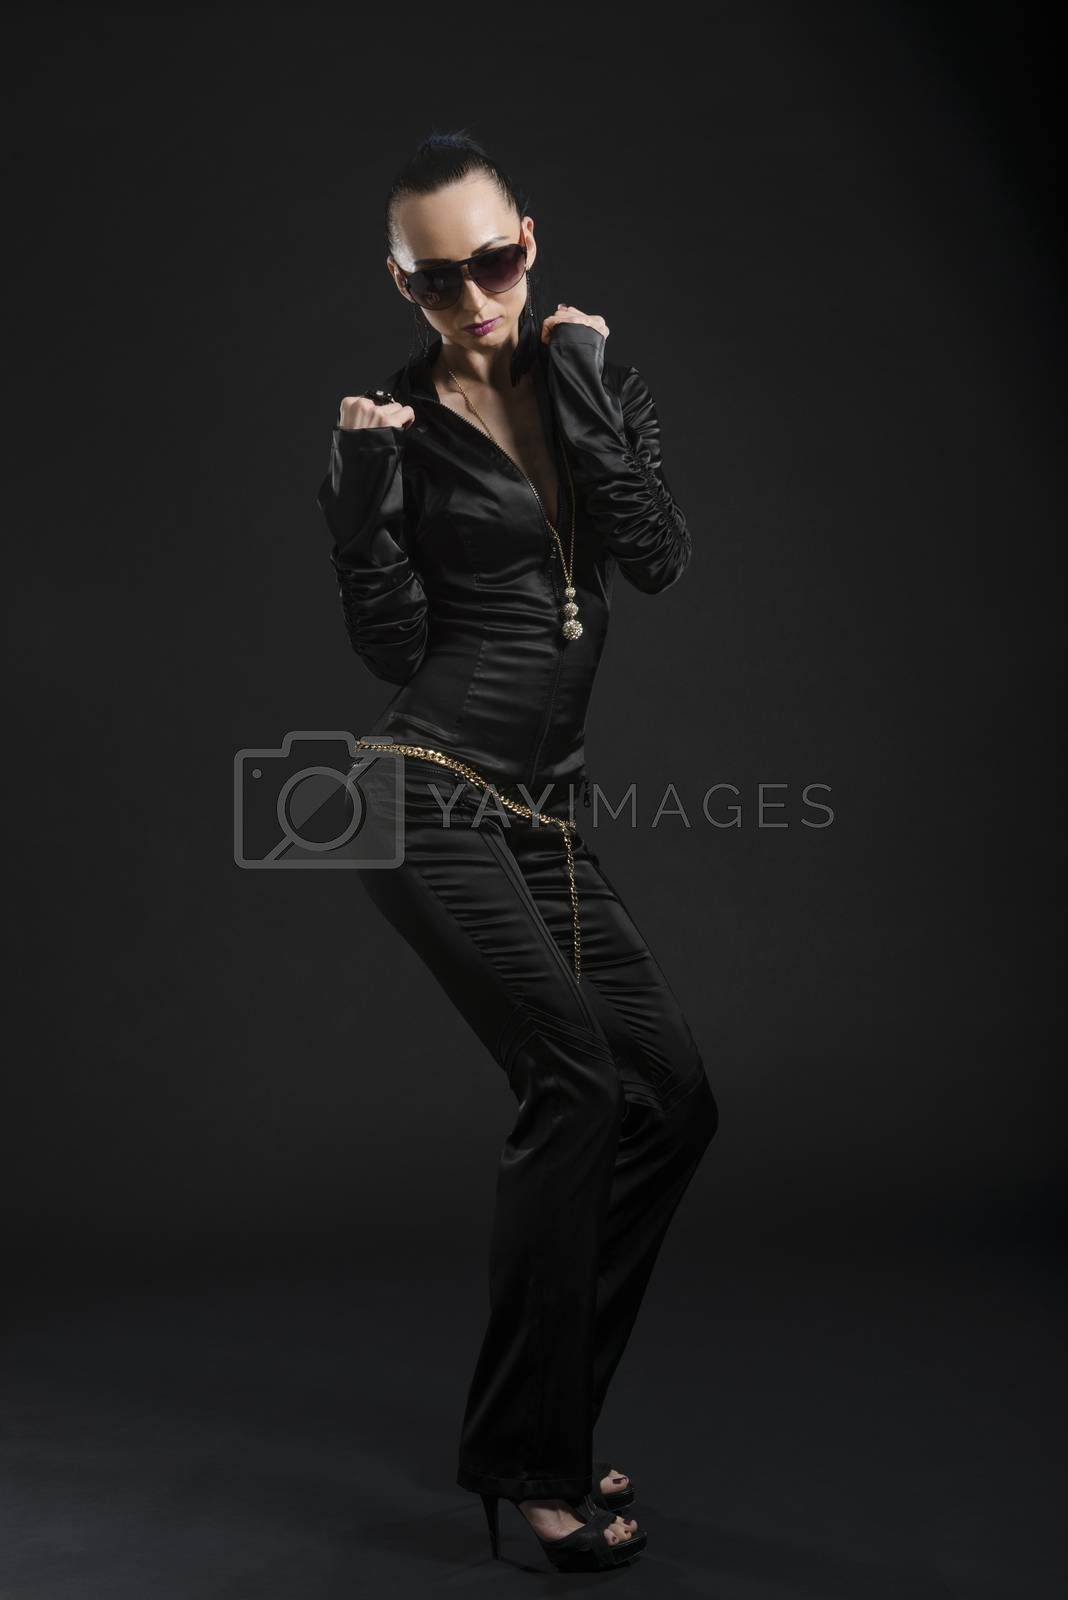 Royalty free image of Pretty Caucasian woman in black leather catsuit by icenando